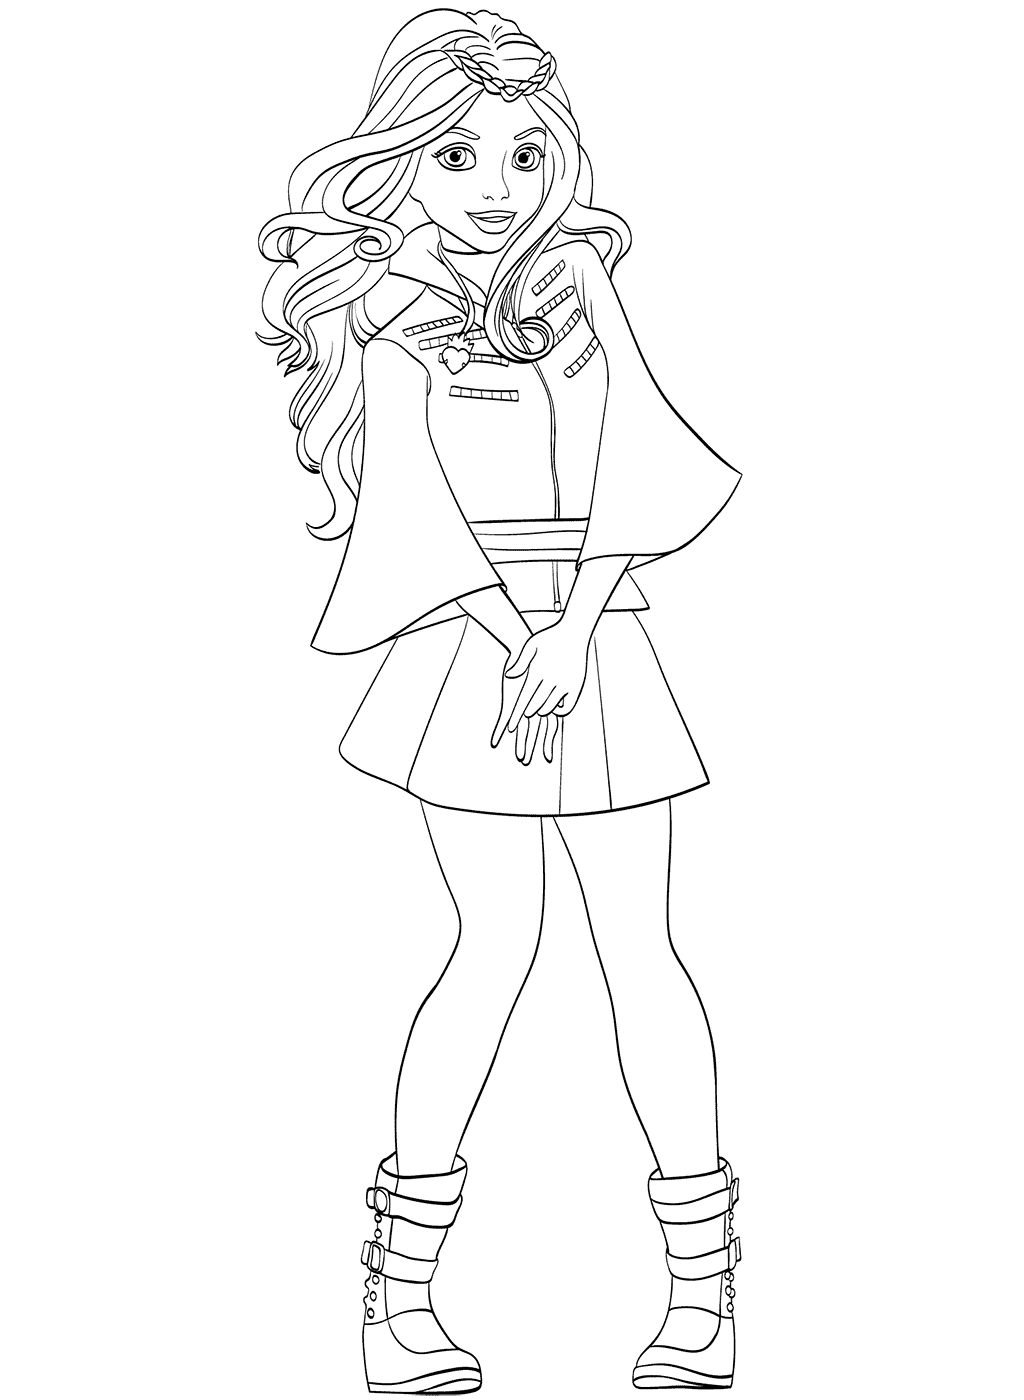 Evie Coloring Page